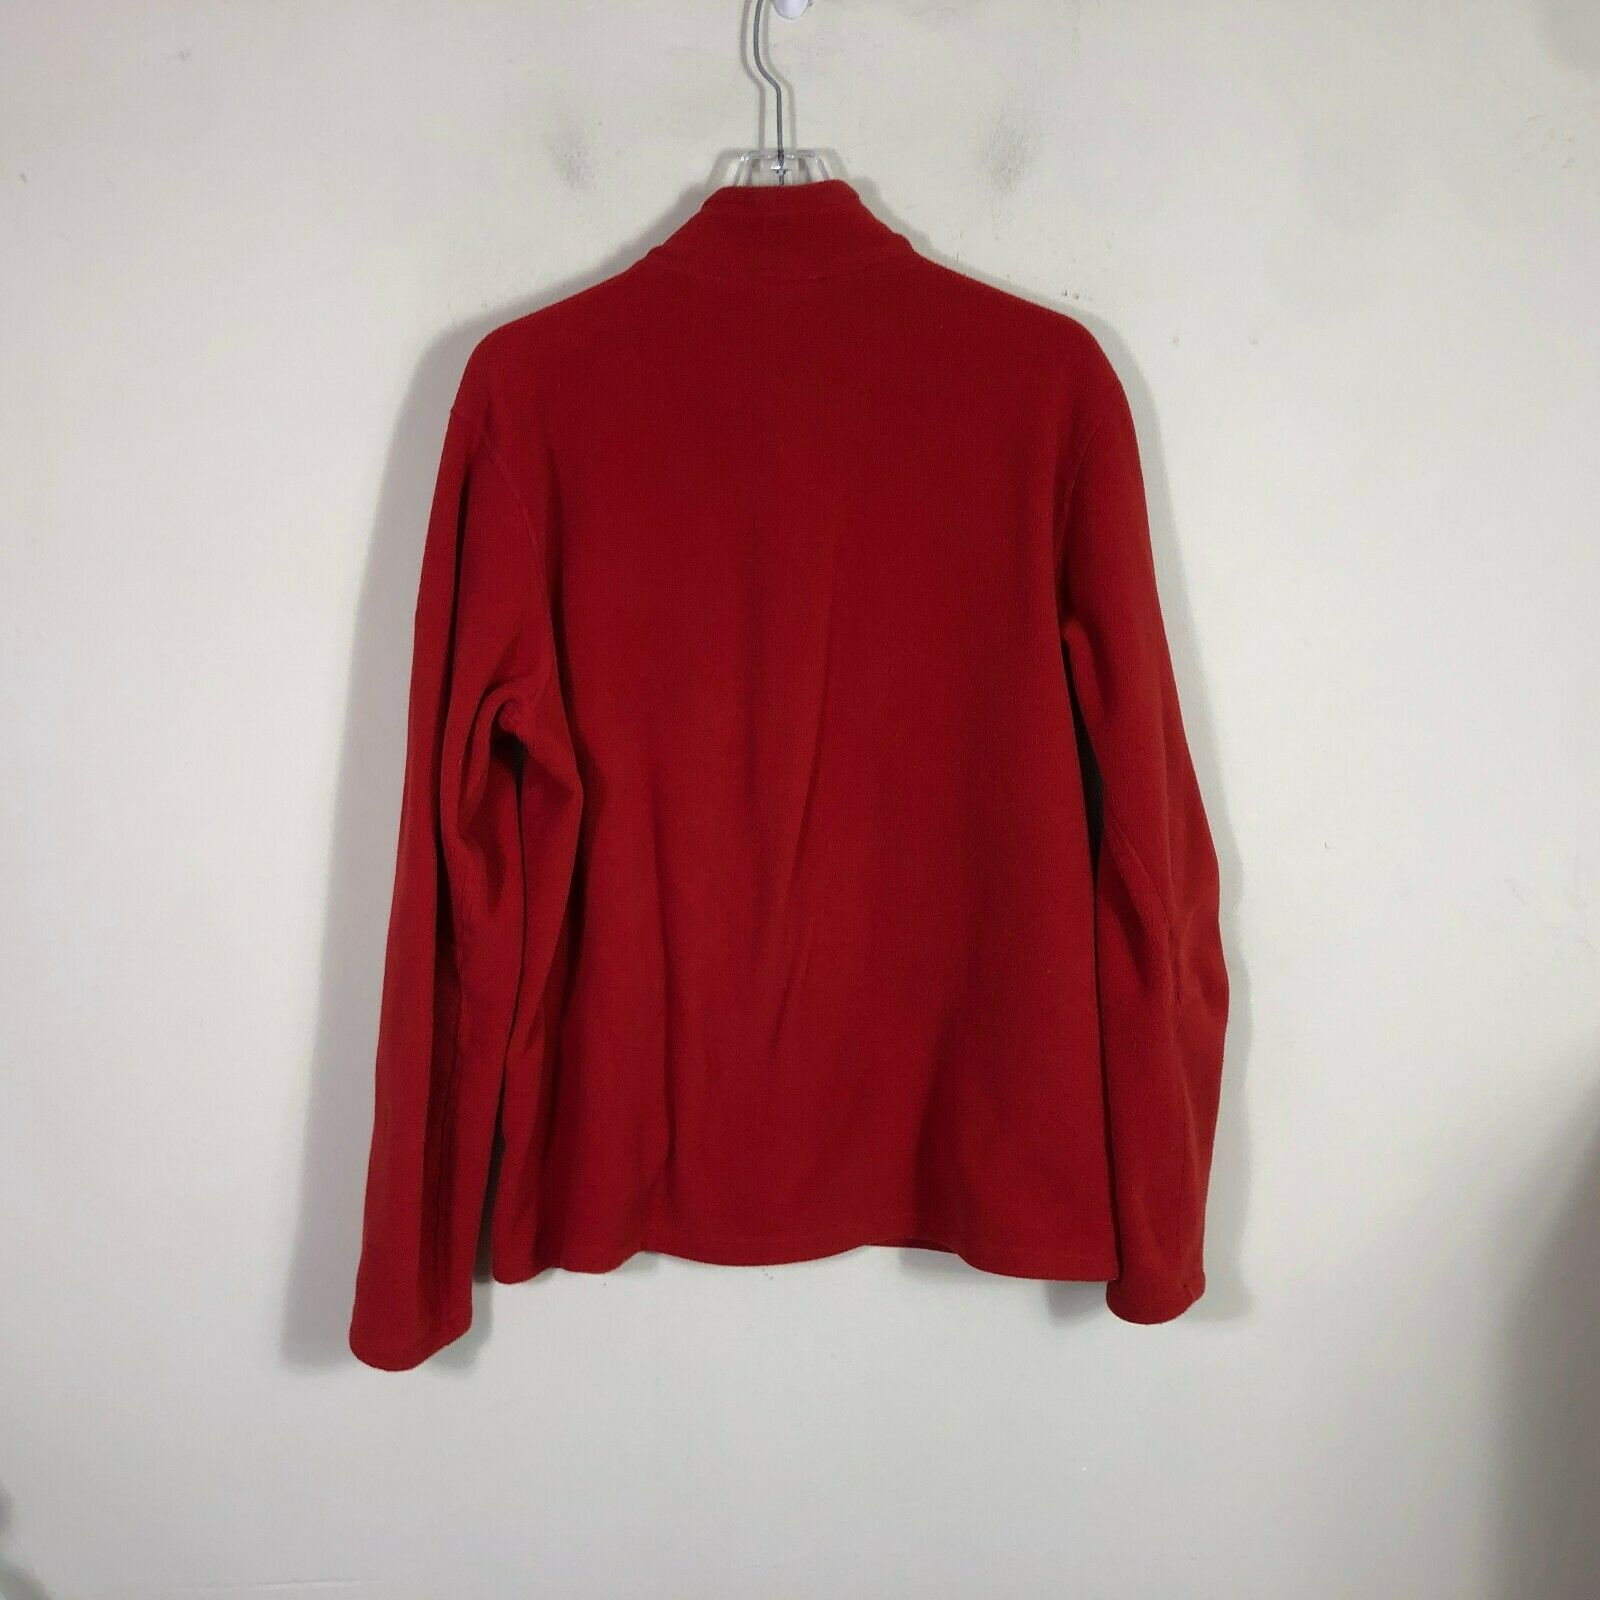 Eddie Bauer First Ascent Fleece Jacket Large Red Long Sleeve Pull Over 1/2 Zip image 5